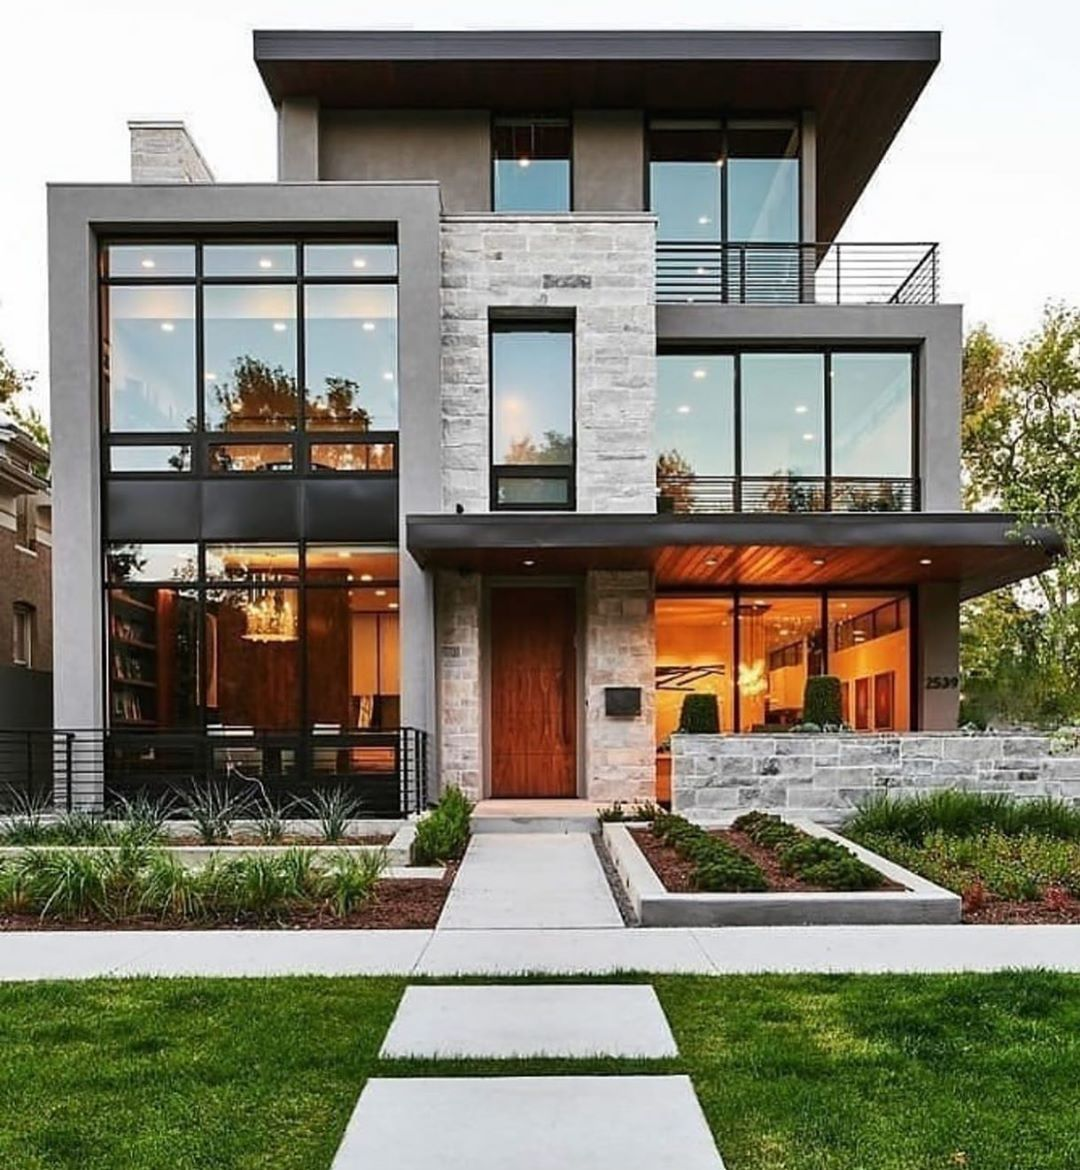 Daily Luxury Posts S Instagram Post Denver Modern Home Featuring National Stone Accen Modern Farmhouse Exterior Luxury House Designs Modern House Exterior